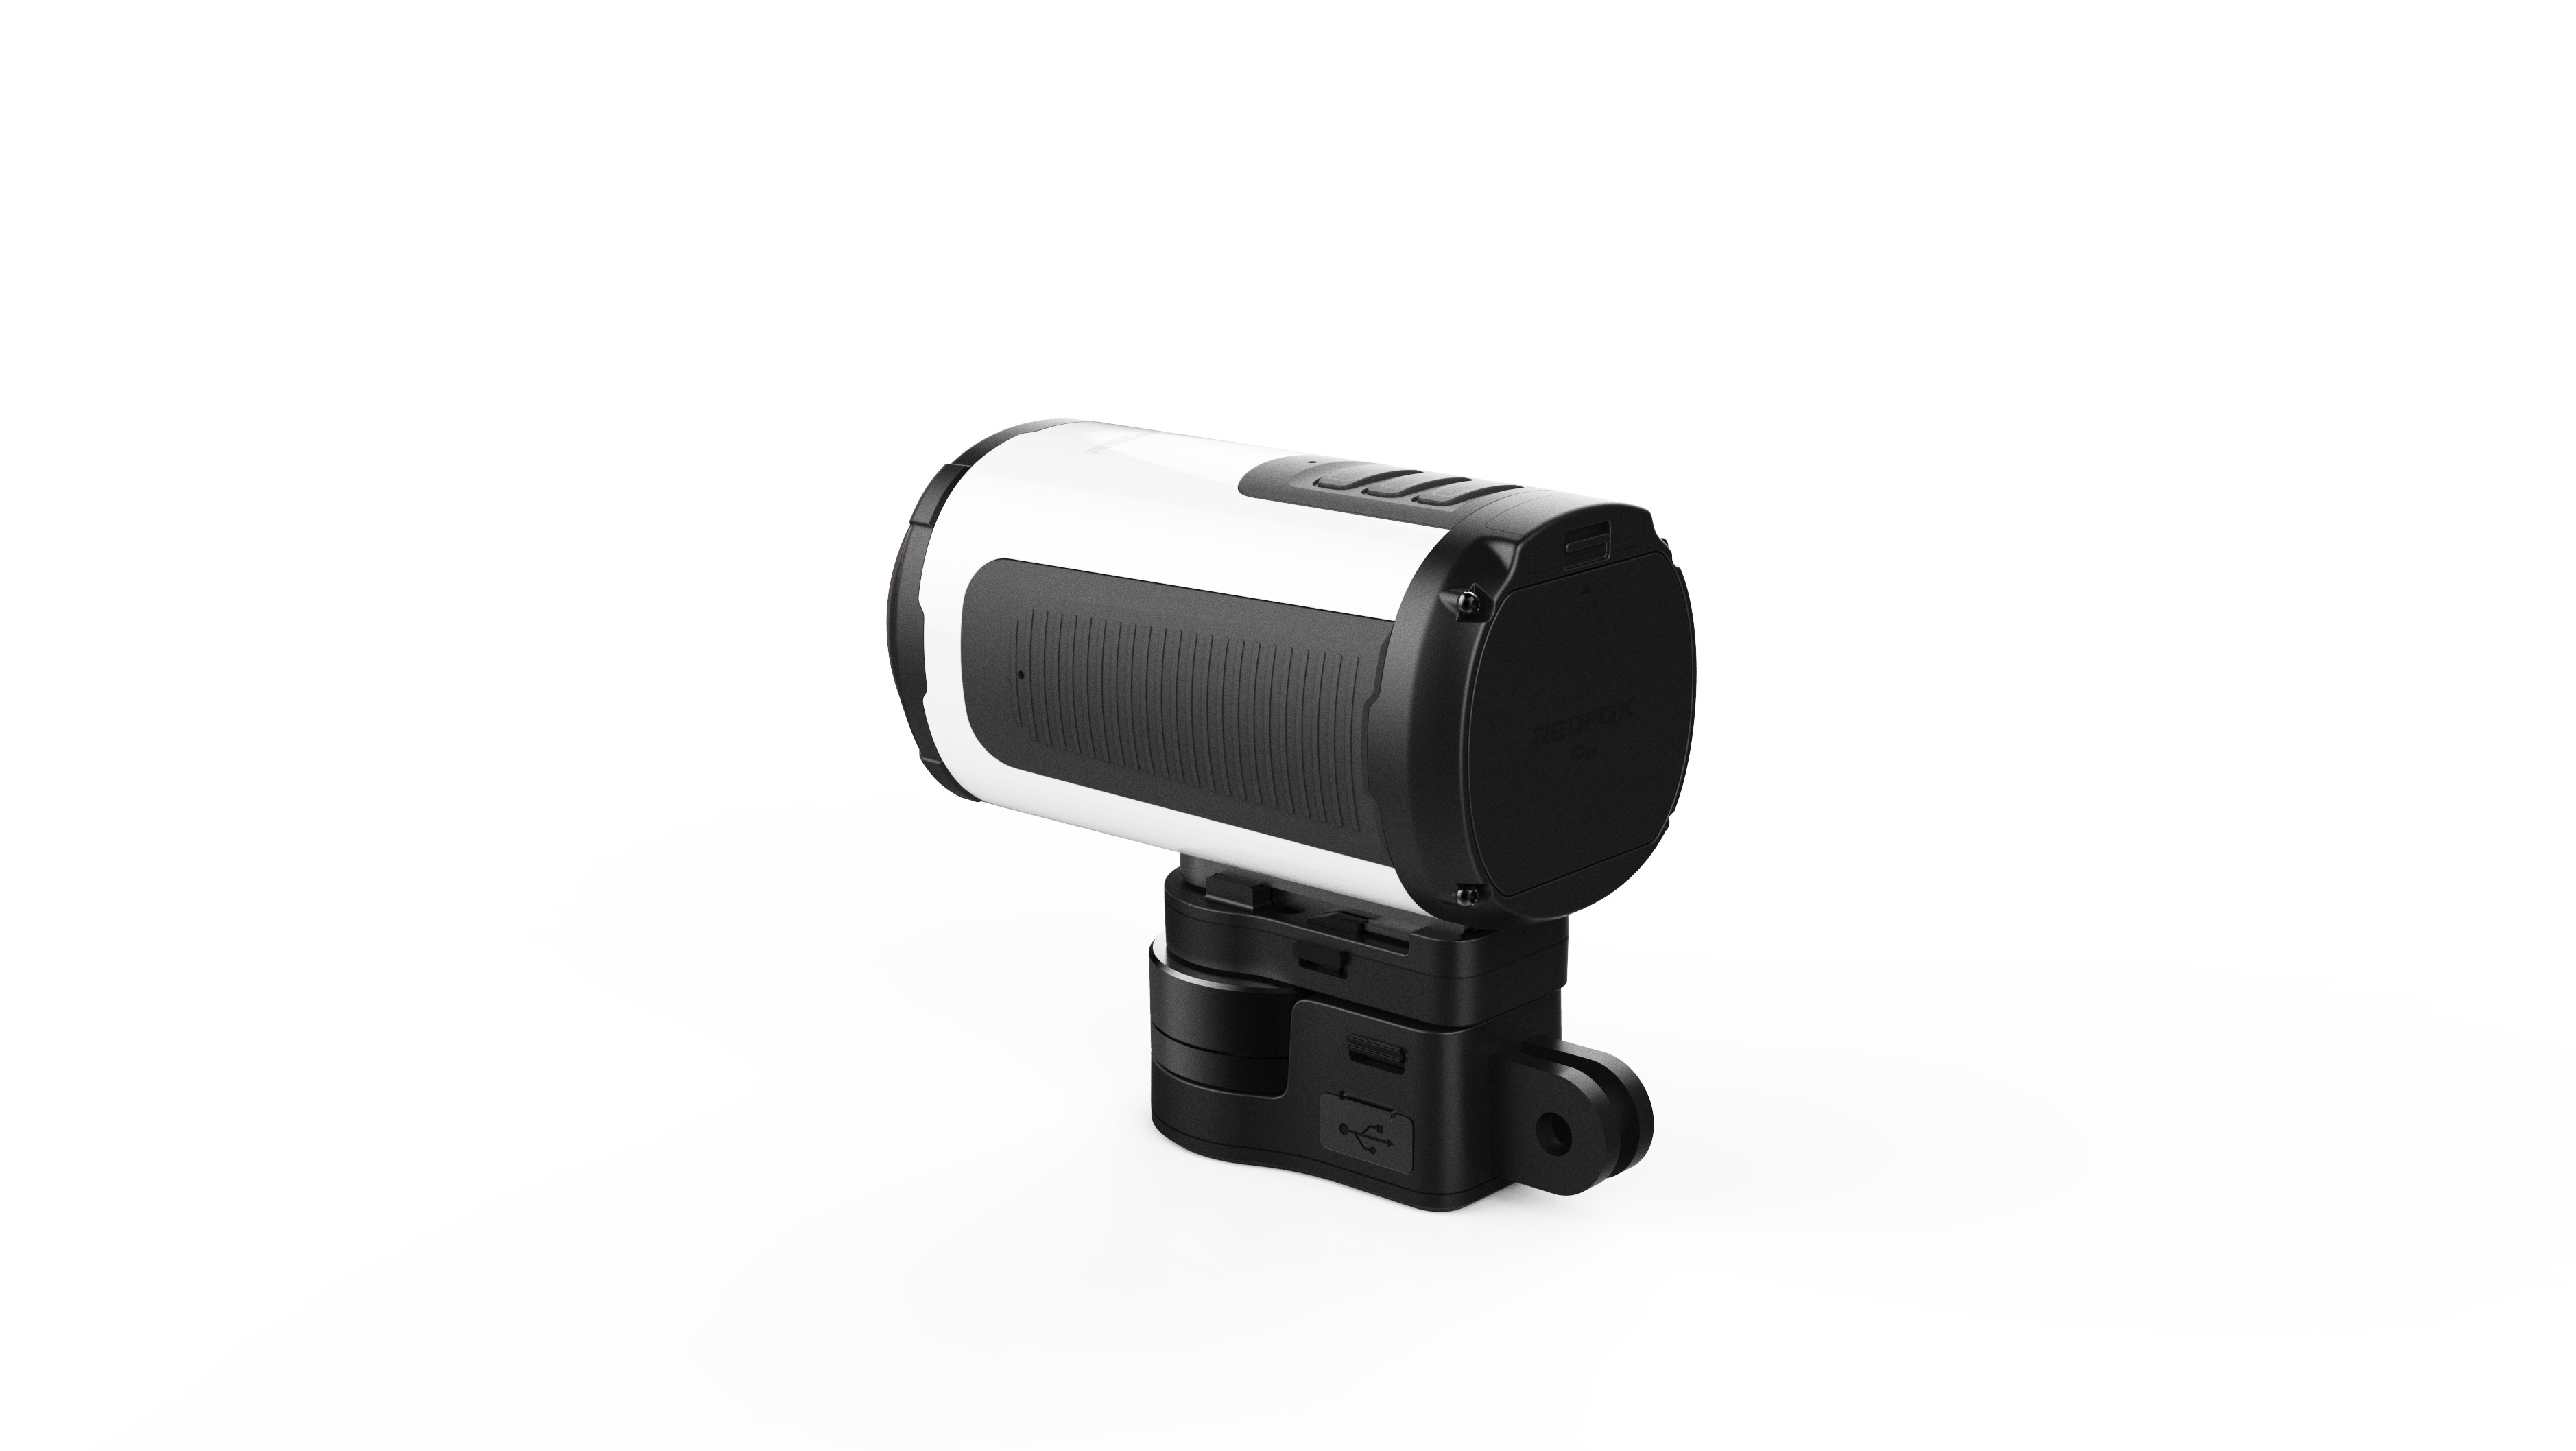 HD Pocket camera with built in gimbal